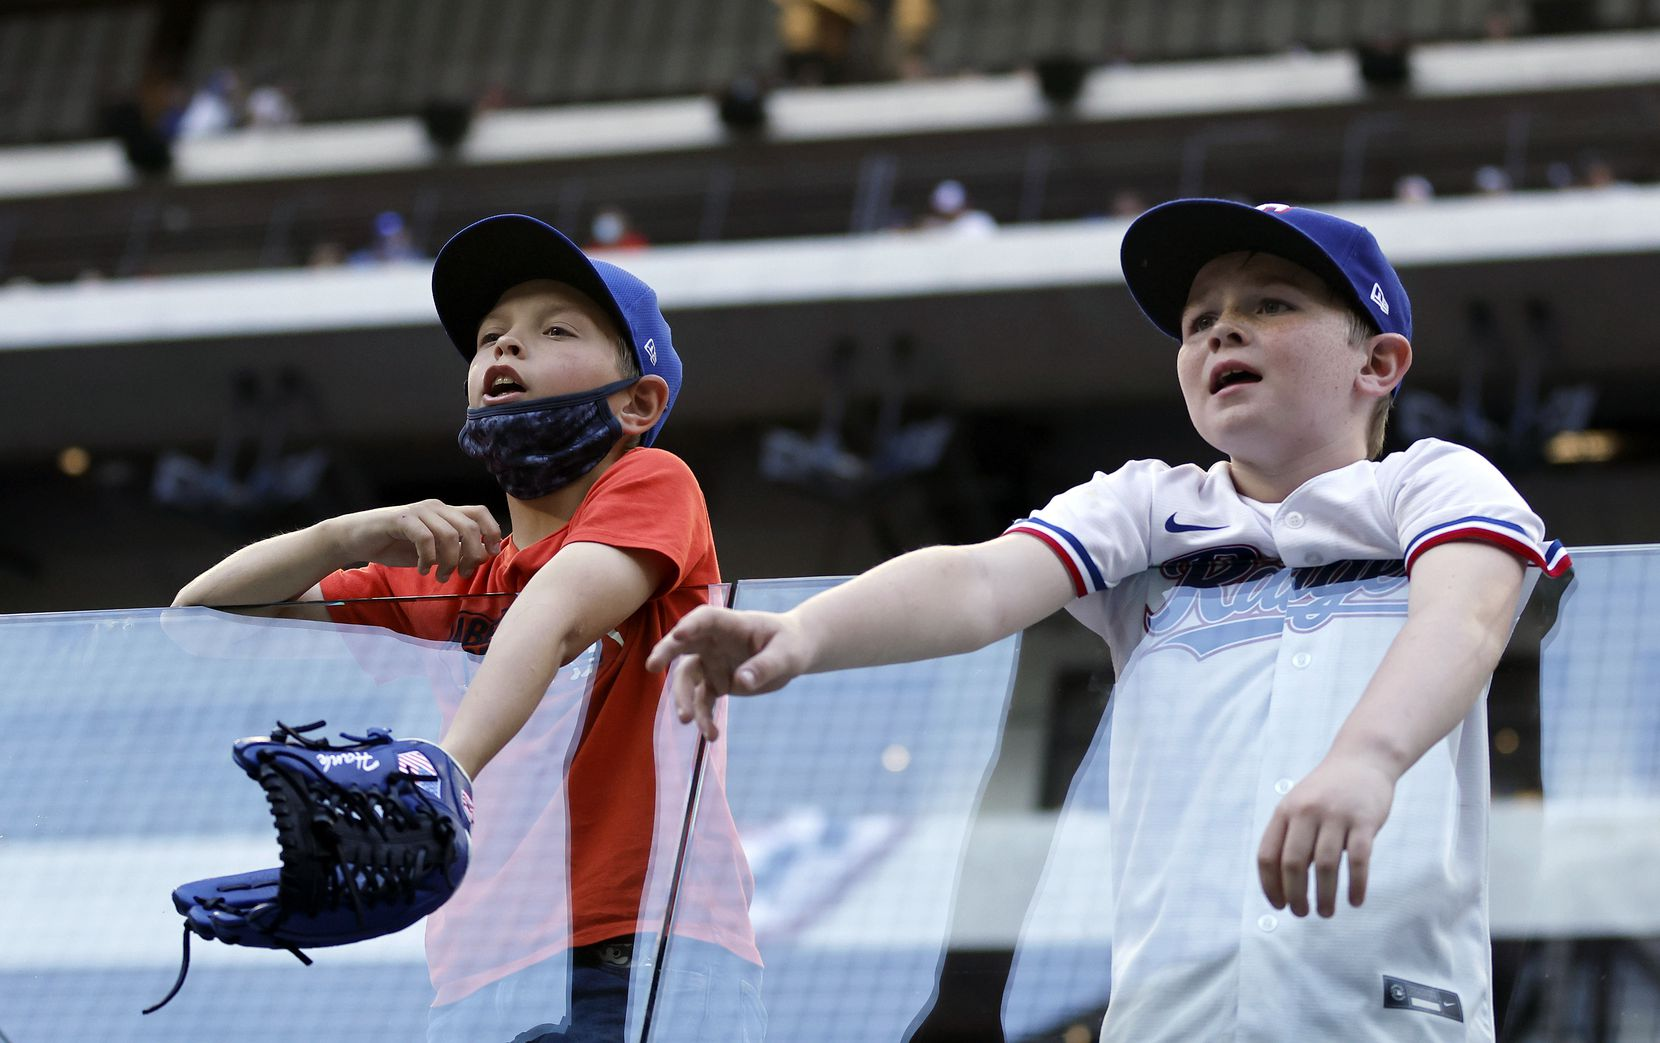 A pair of young Texas Rangers plead for a ball from a Toronto Blue Jays player coming off the field in the eighth inning at Globe Life Field in Arlington, Monday, April 5, 2021. The Texas Rangers were facing the Toronto Blue Jays in their home opener. The Rangers lost, 6-4. (Tom Fox/The Dallas Morning News)